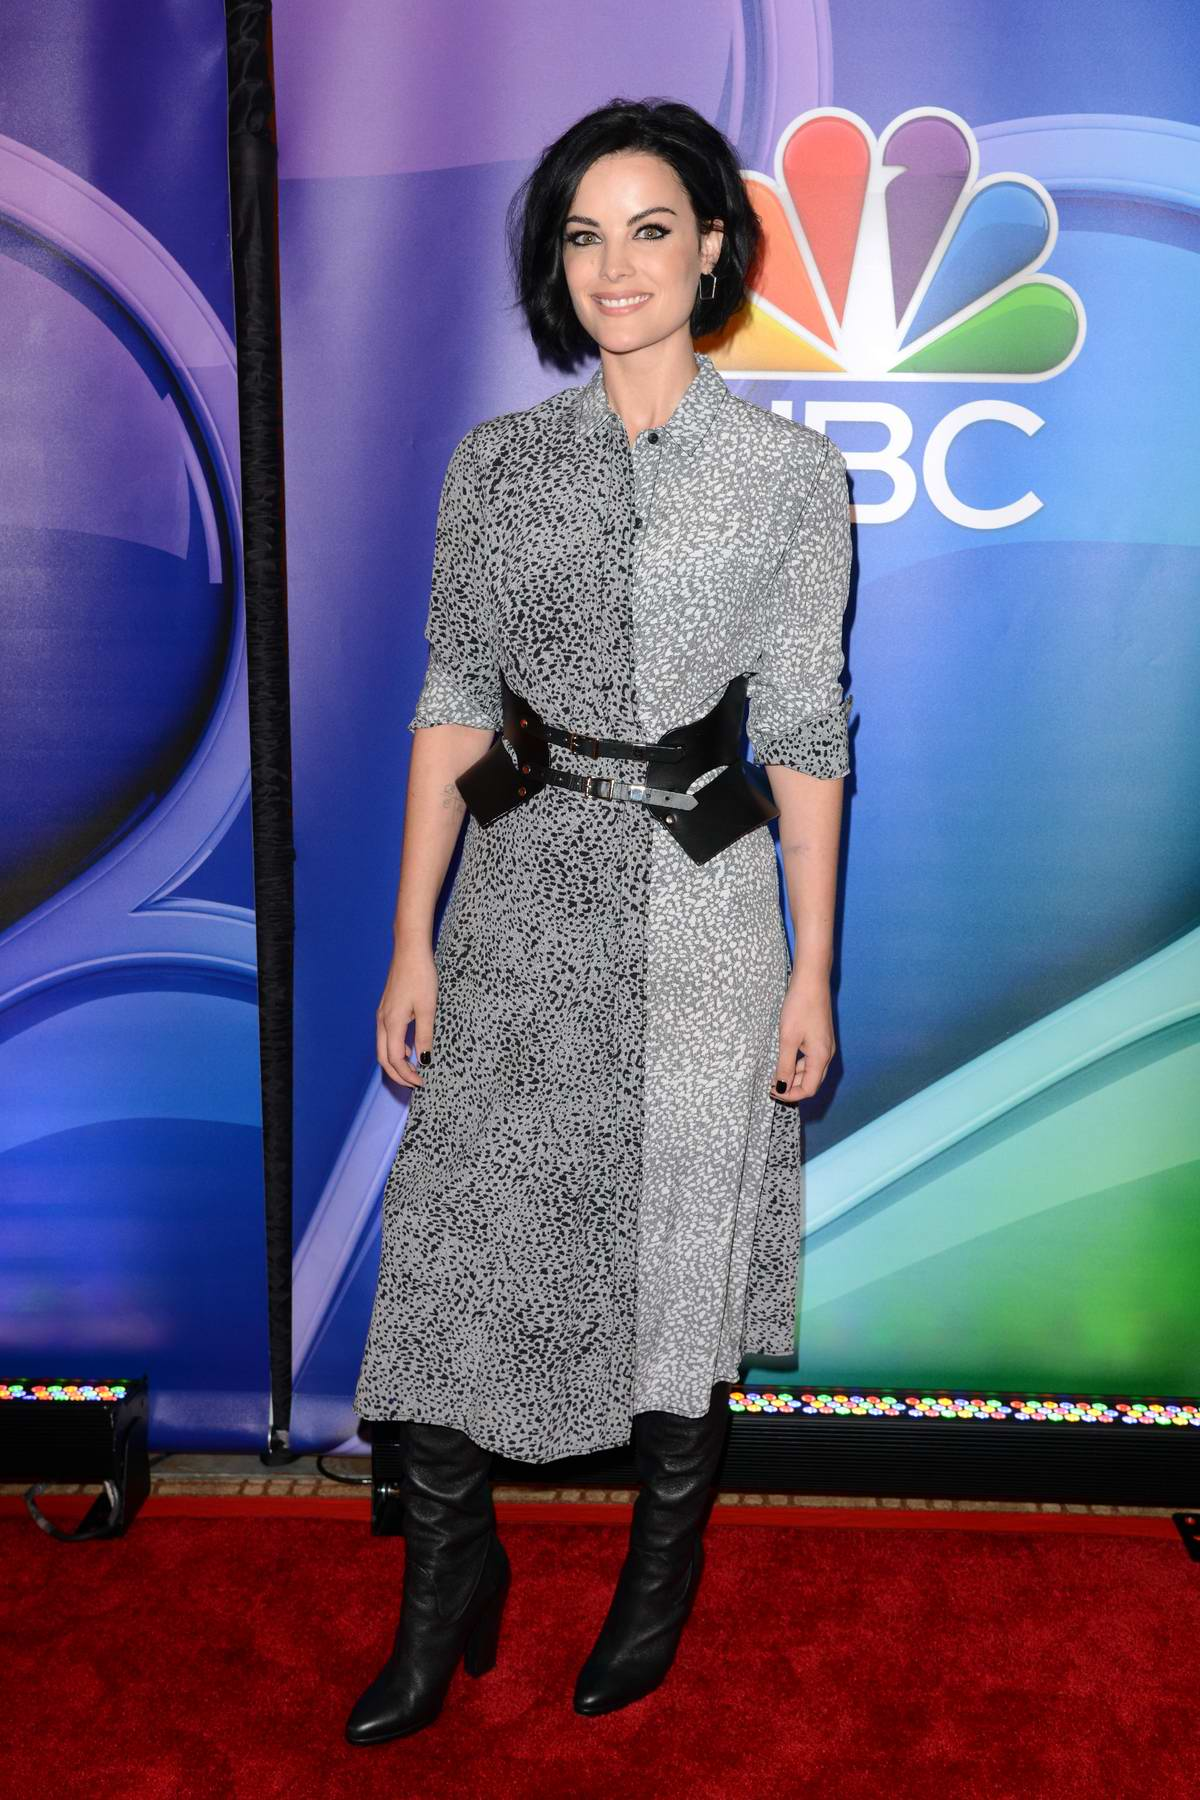 Jaimie Alexander attends NBC Fall Junket in New York City